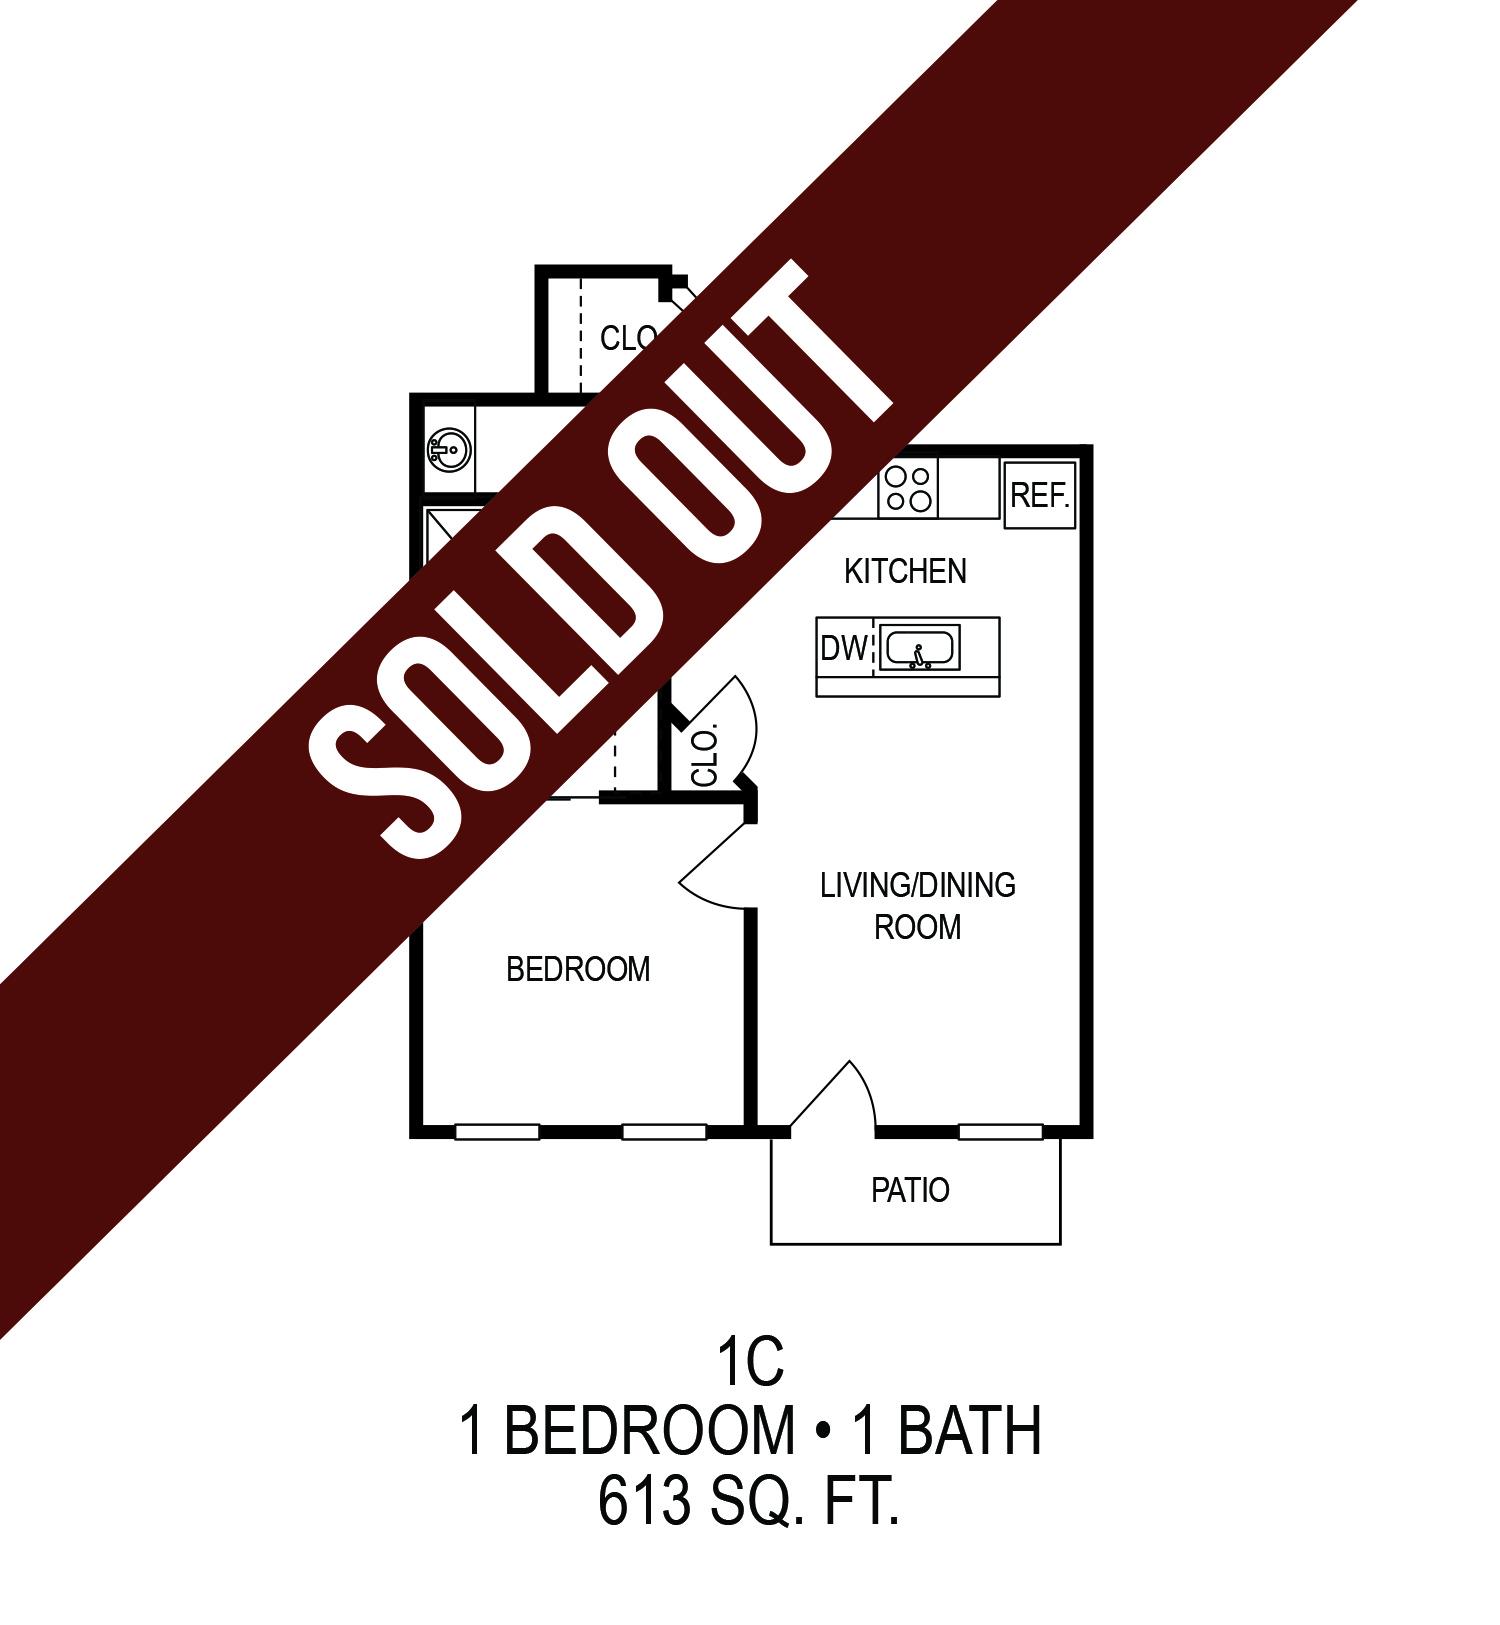 Floorplan - One Bedroom (C)* image